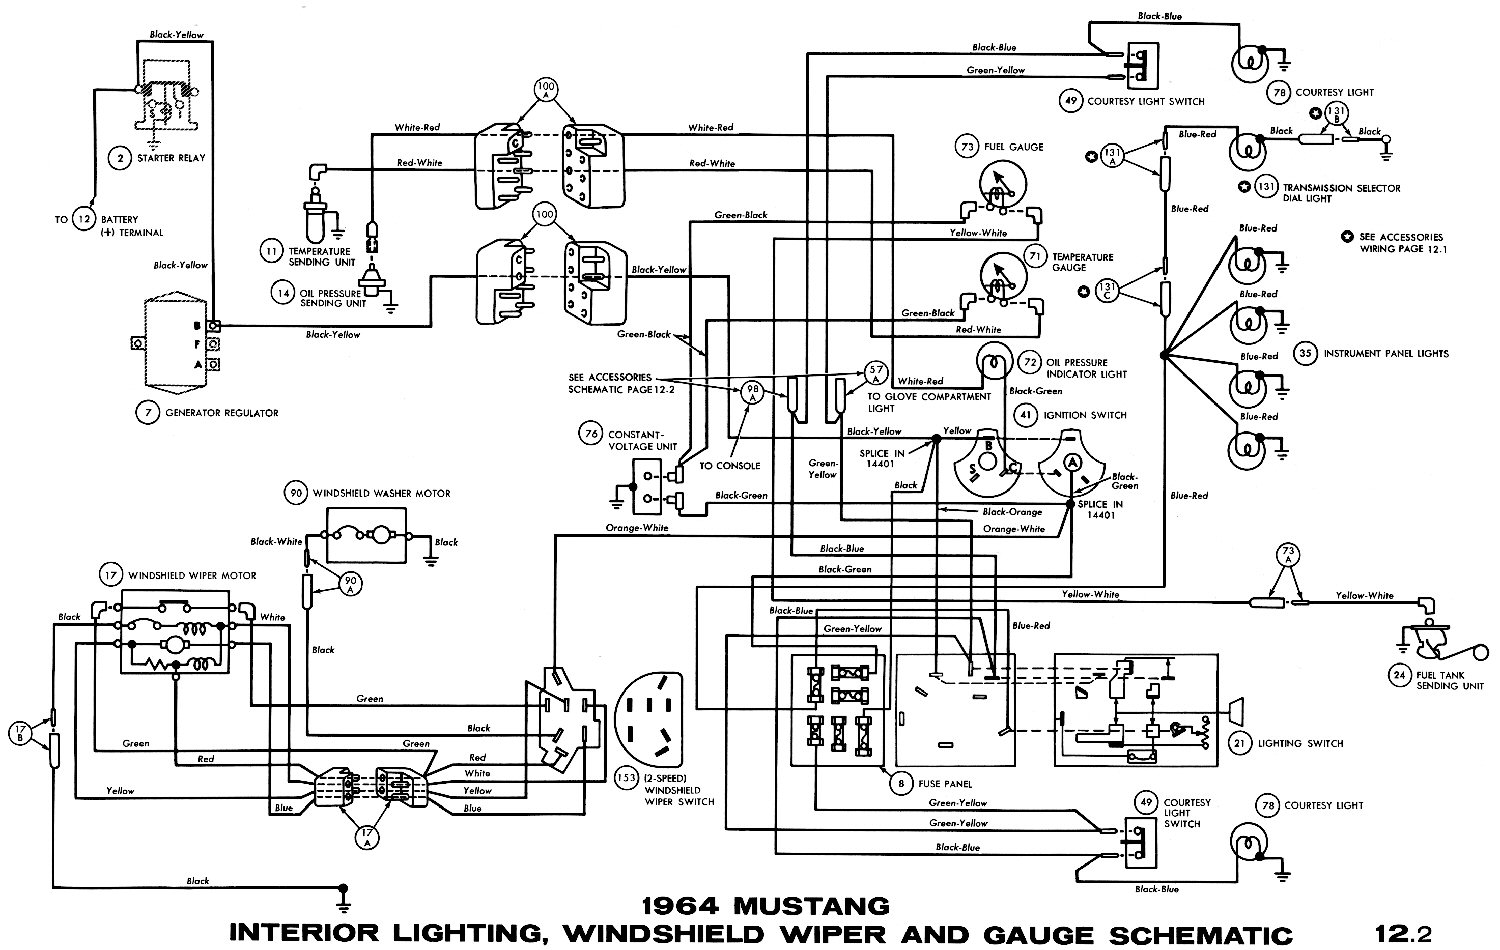 1969 Amc Amx Wiring Diagram Just Another Blog Msd For 77 Hornet The Forum Harness 1972 Ford Mustang Detailed Rh 9 2 Gastspiel Gerhartz De 1967 Rebel